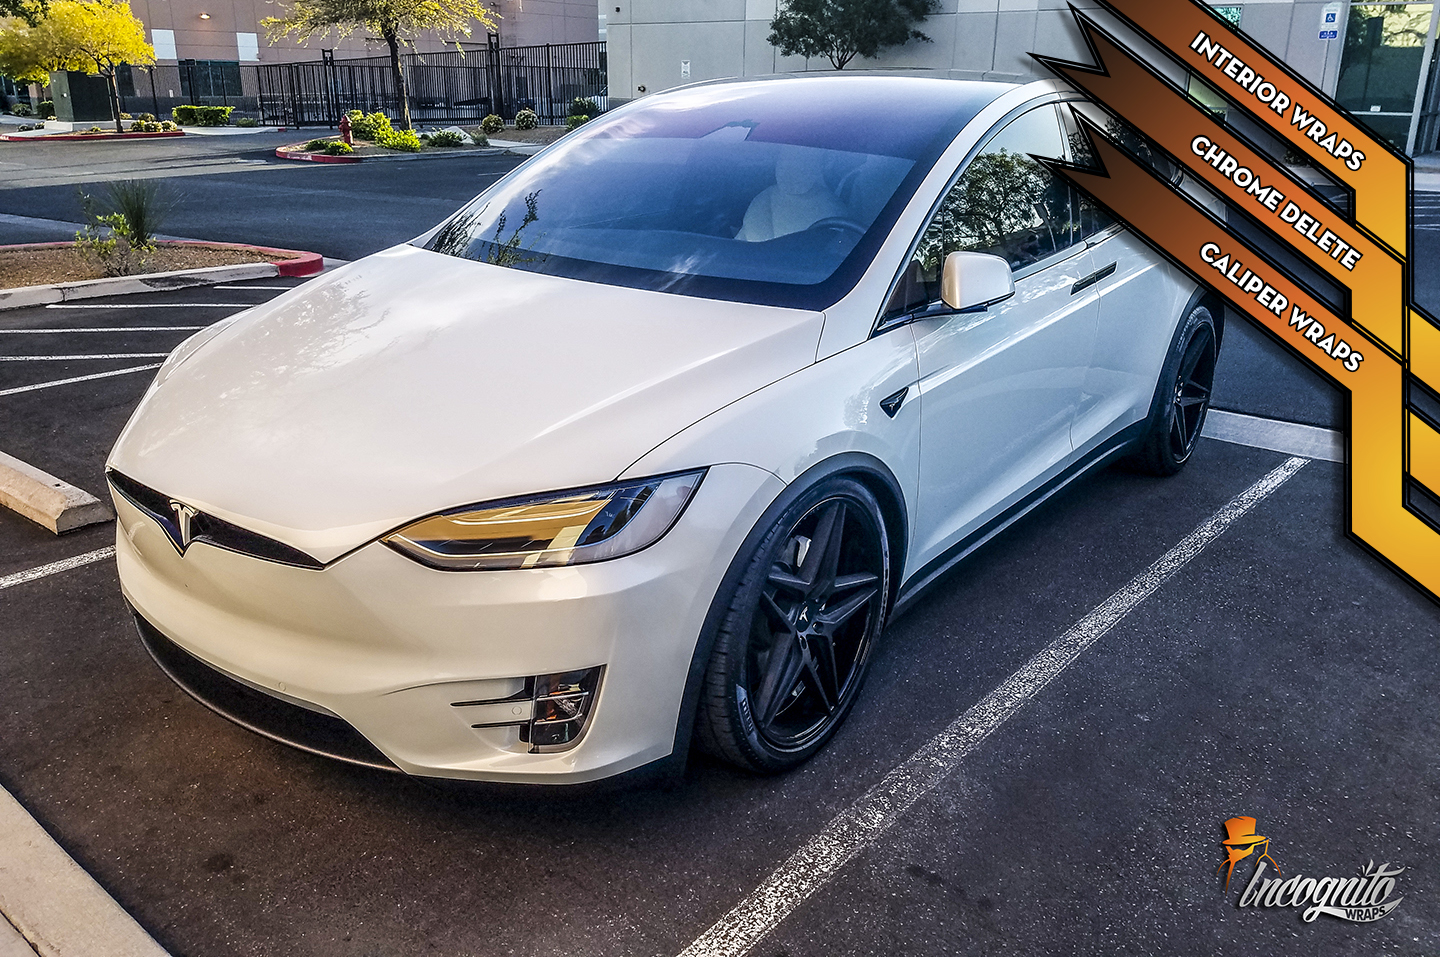 Tesla Model X - White Chrome Delete, Caliper Wraps, and Piano Black interior